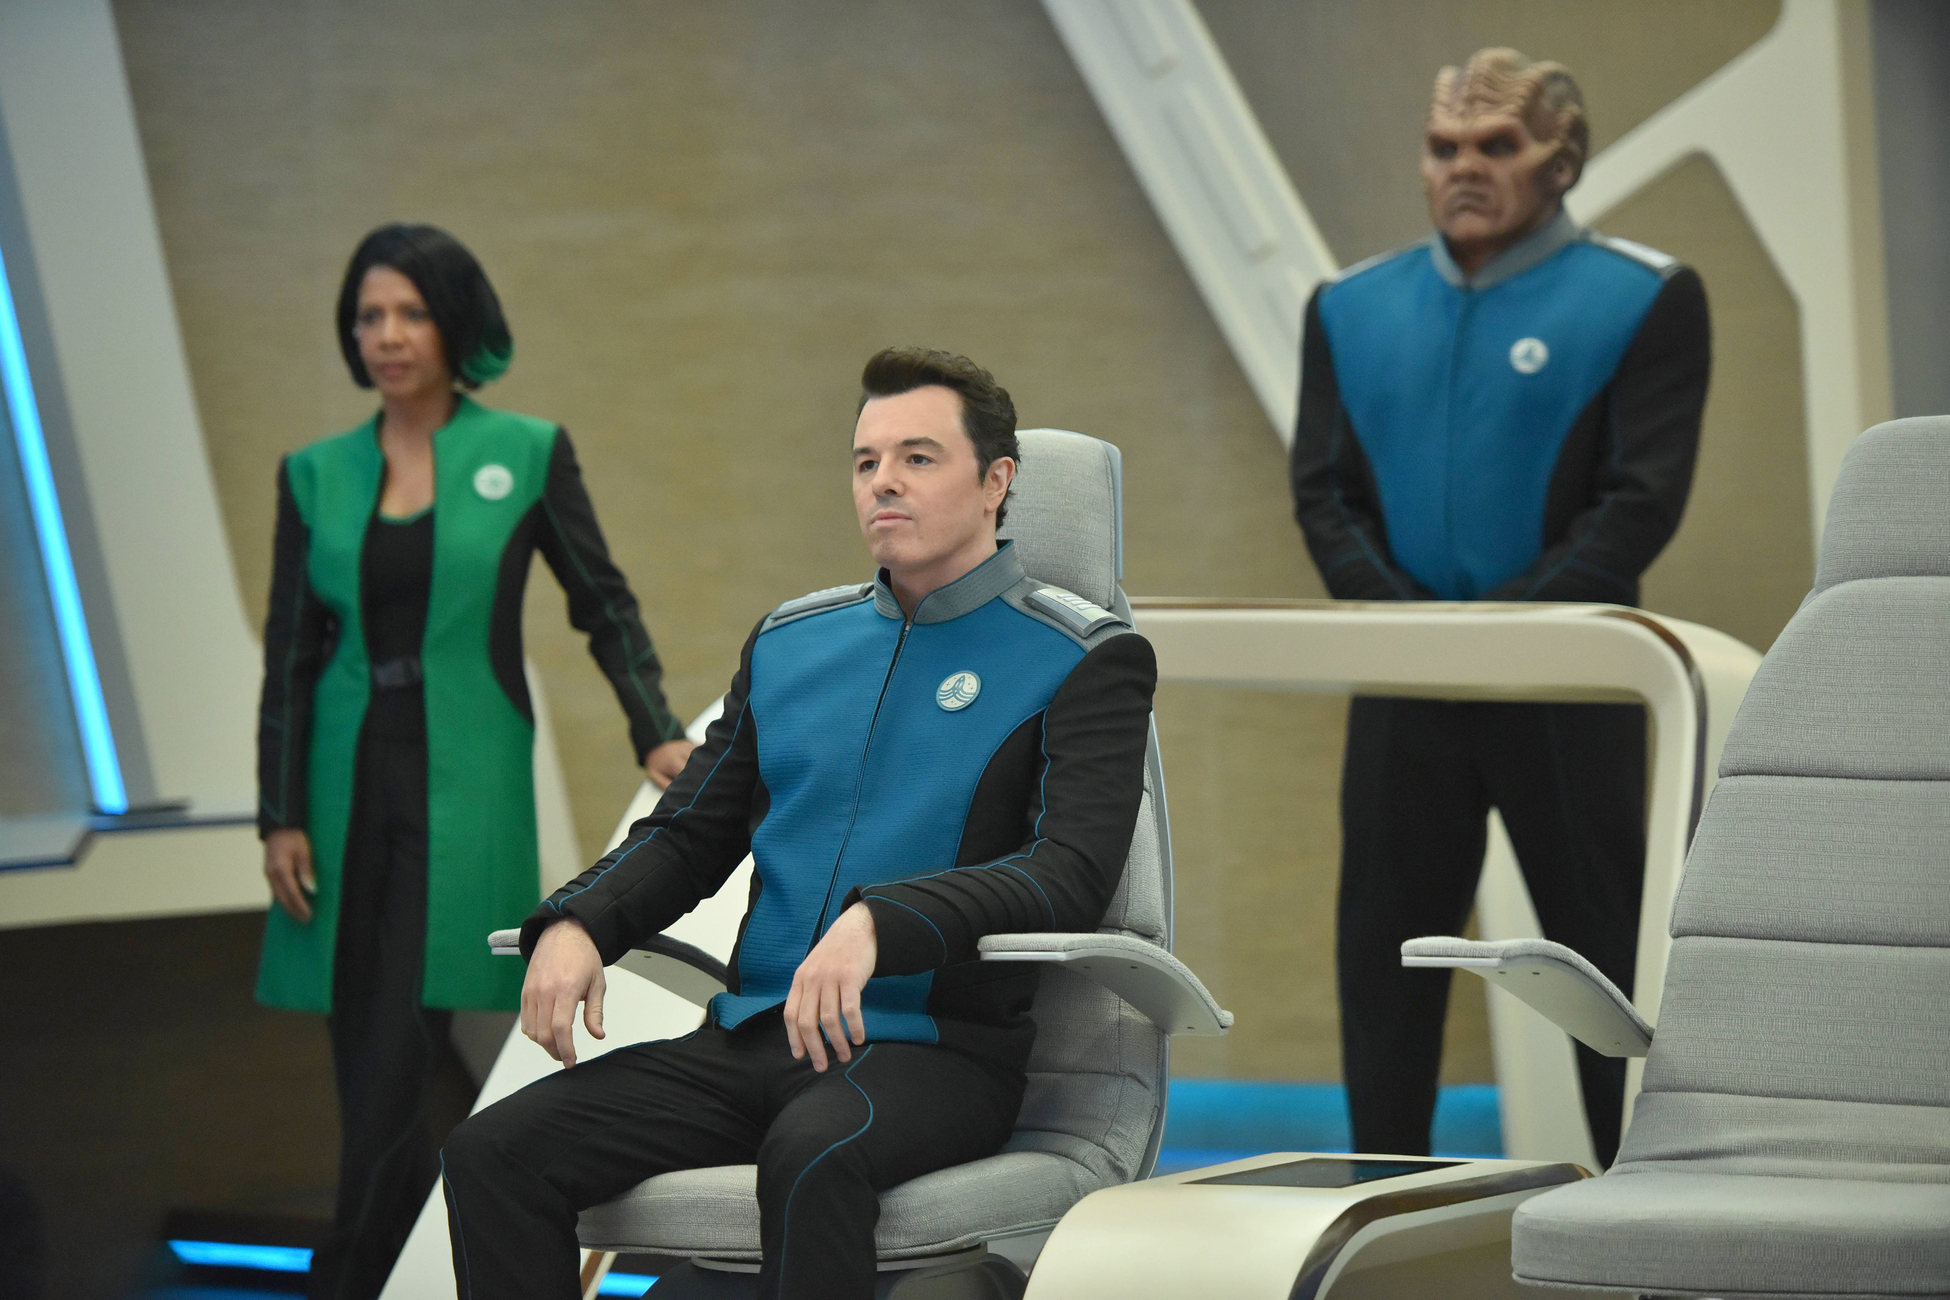 Penny Johnson Jerald, Seth MacFarlane, and Peter Macon in The Orville (2017)